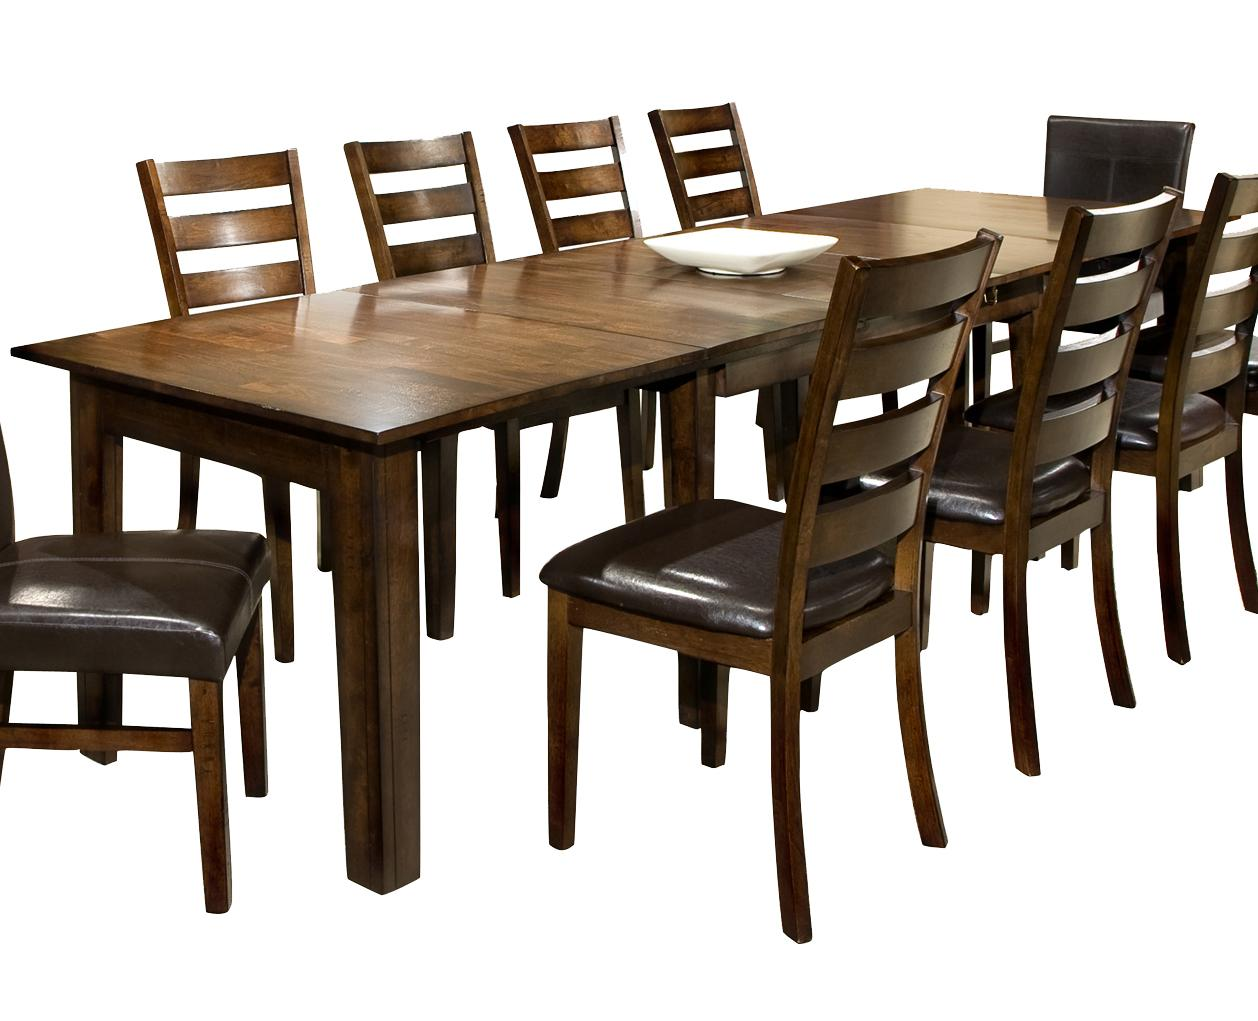 Intercon Kona Dining Table with 3 Leaves - Item Number: KA-TA-38130-RAI-BSE+TOP